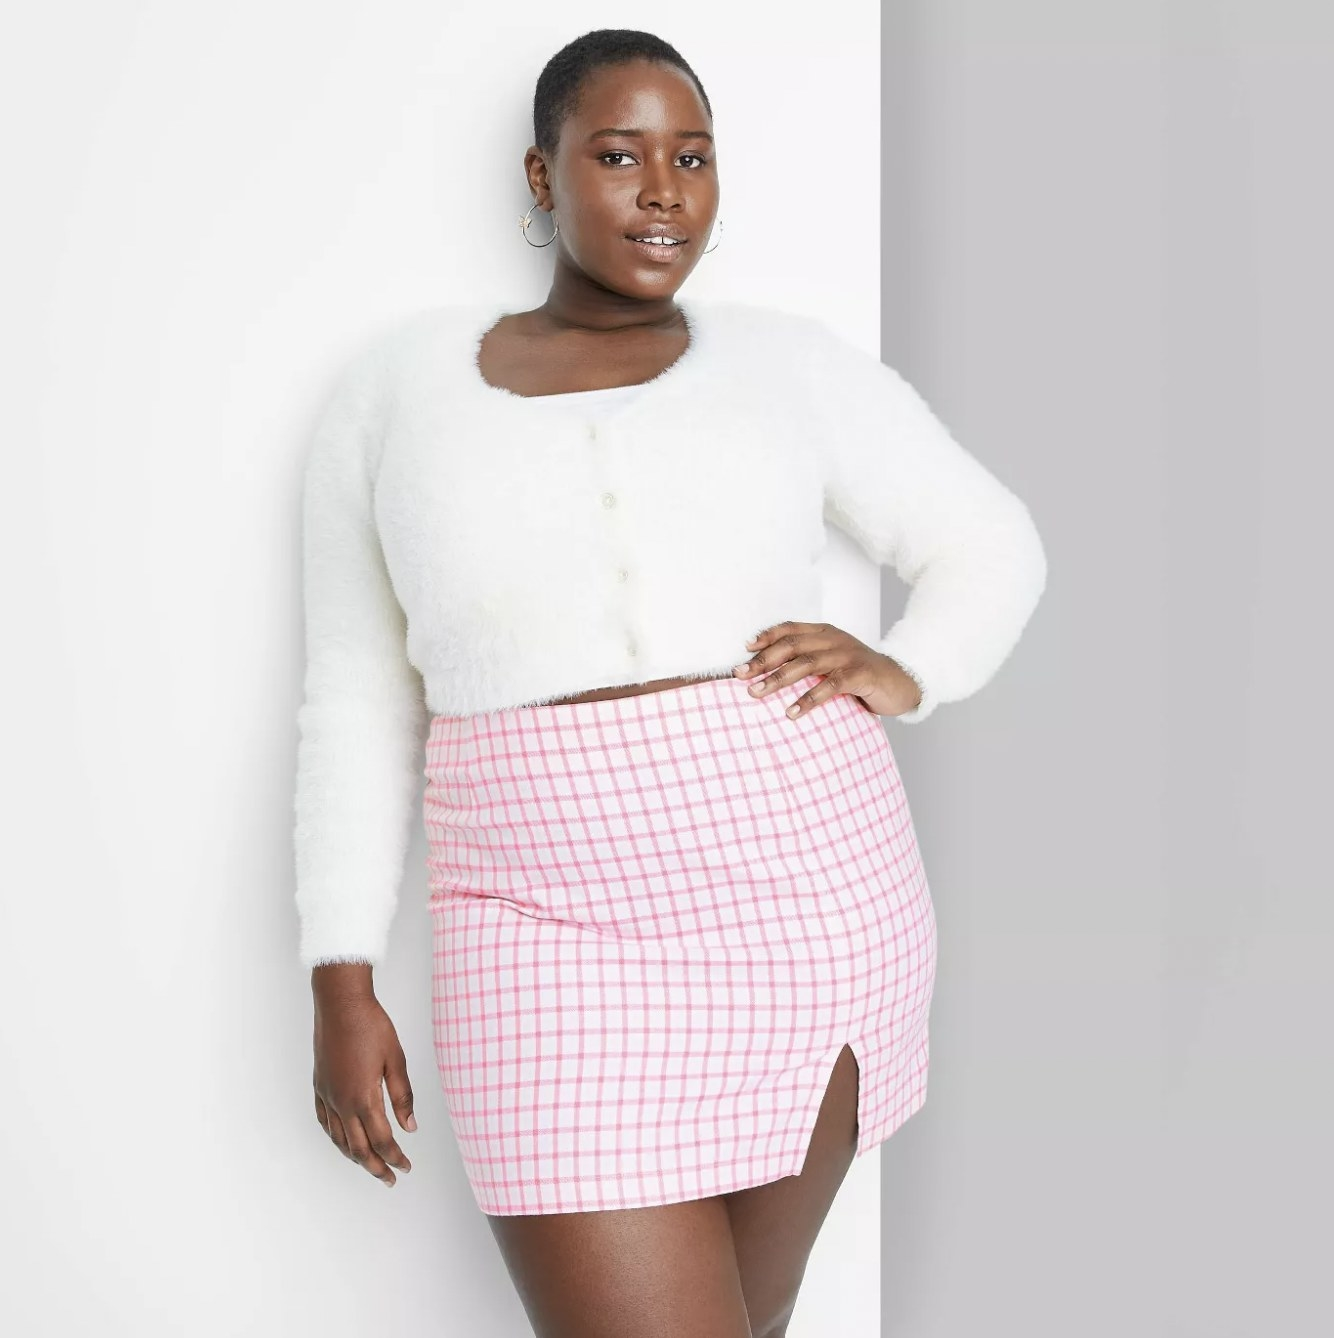 A model wearing a white buttoned sweater and a pink striped print skirt